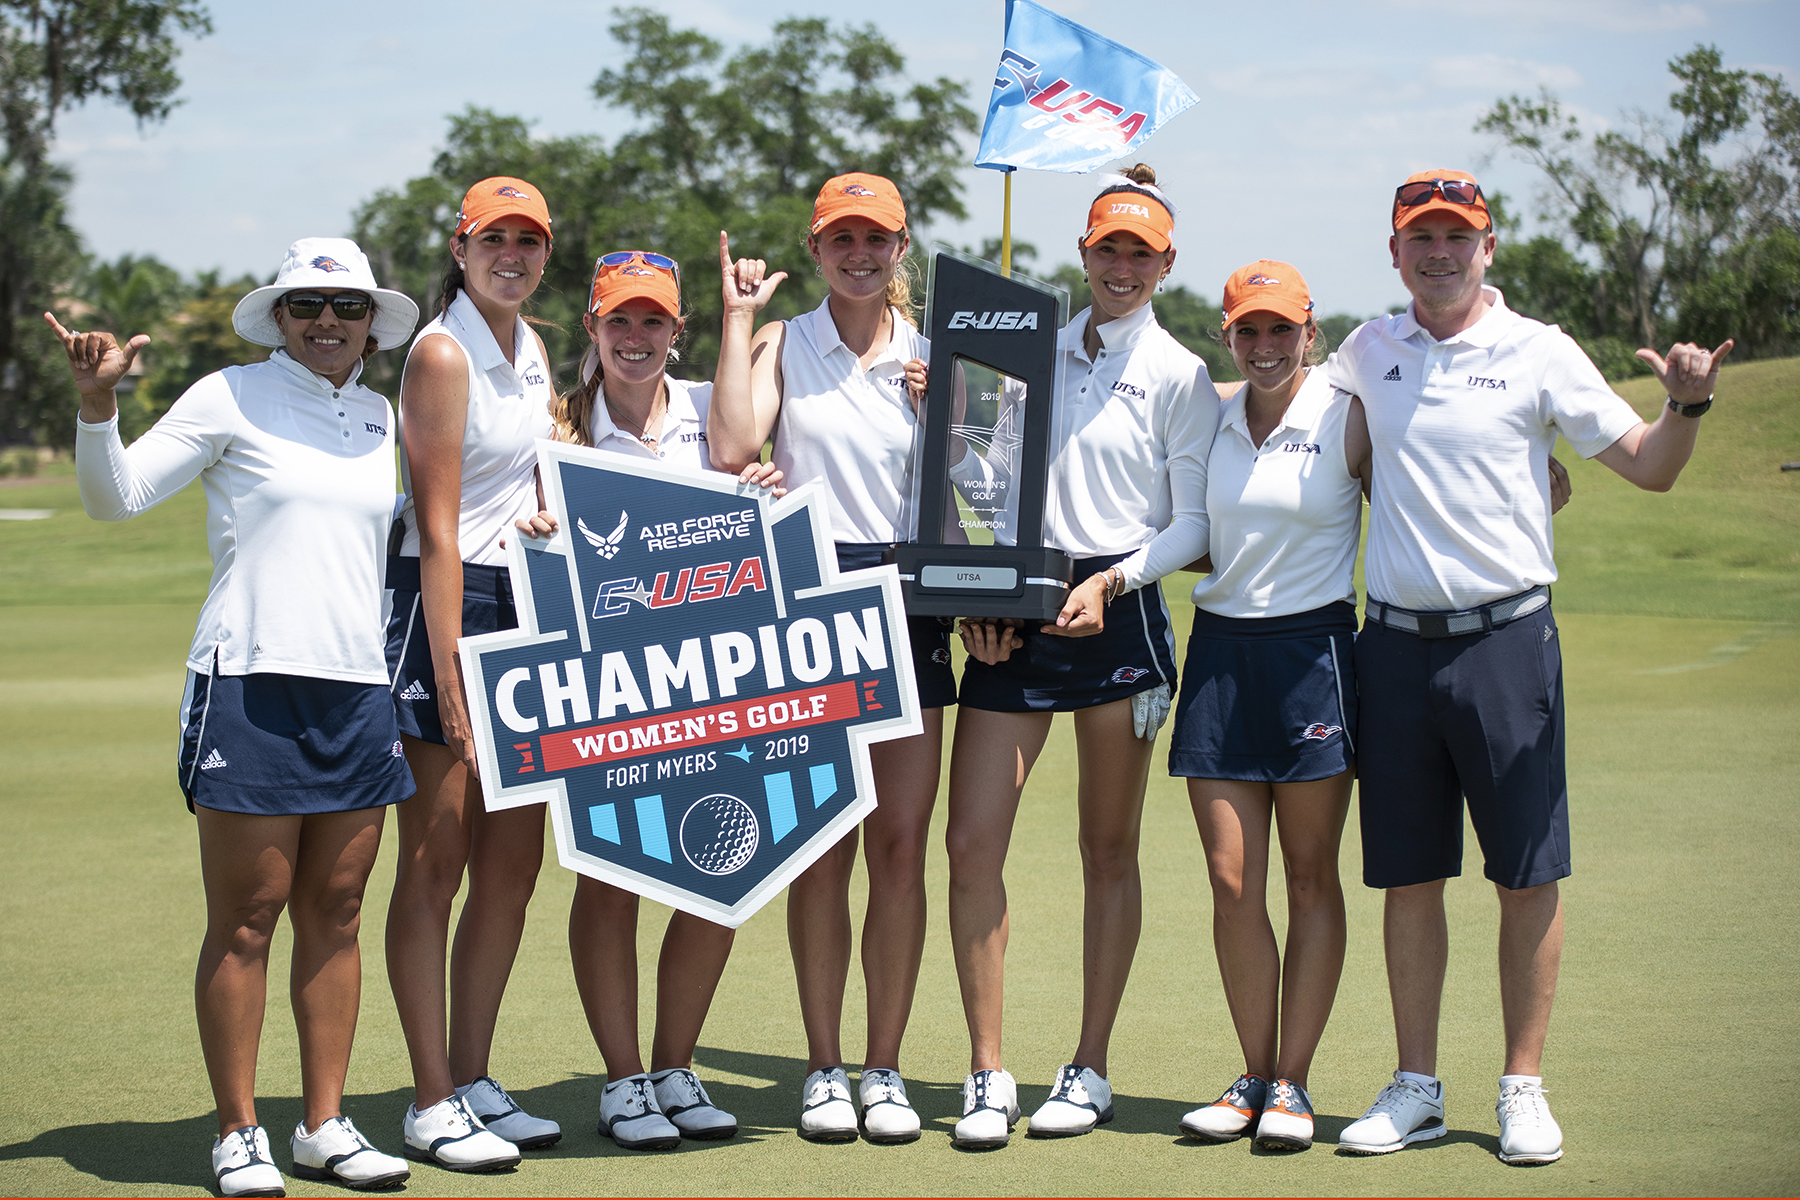 'Runners after they won their championship. Photo courtesies of Conference USA